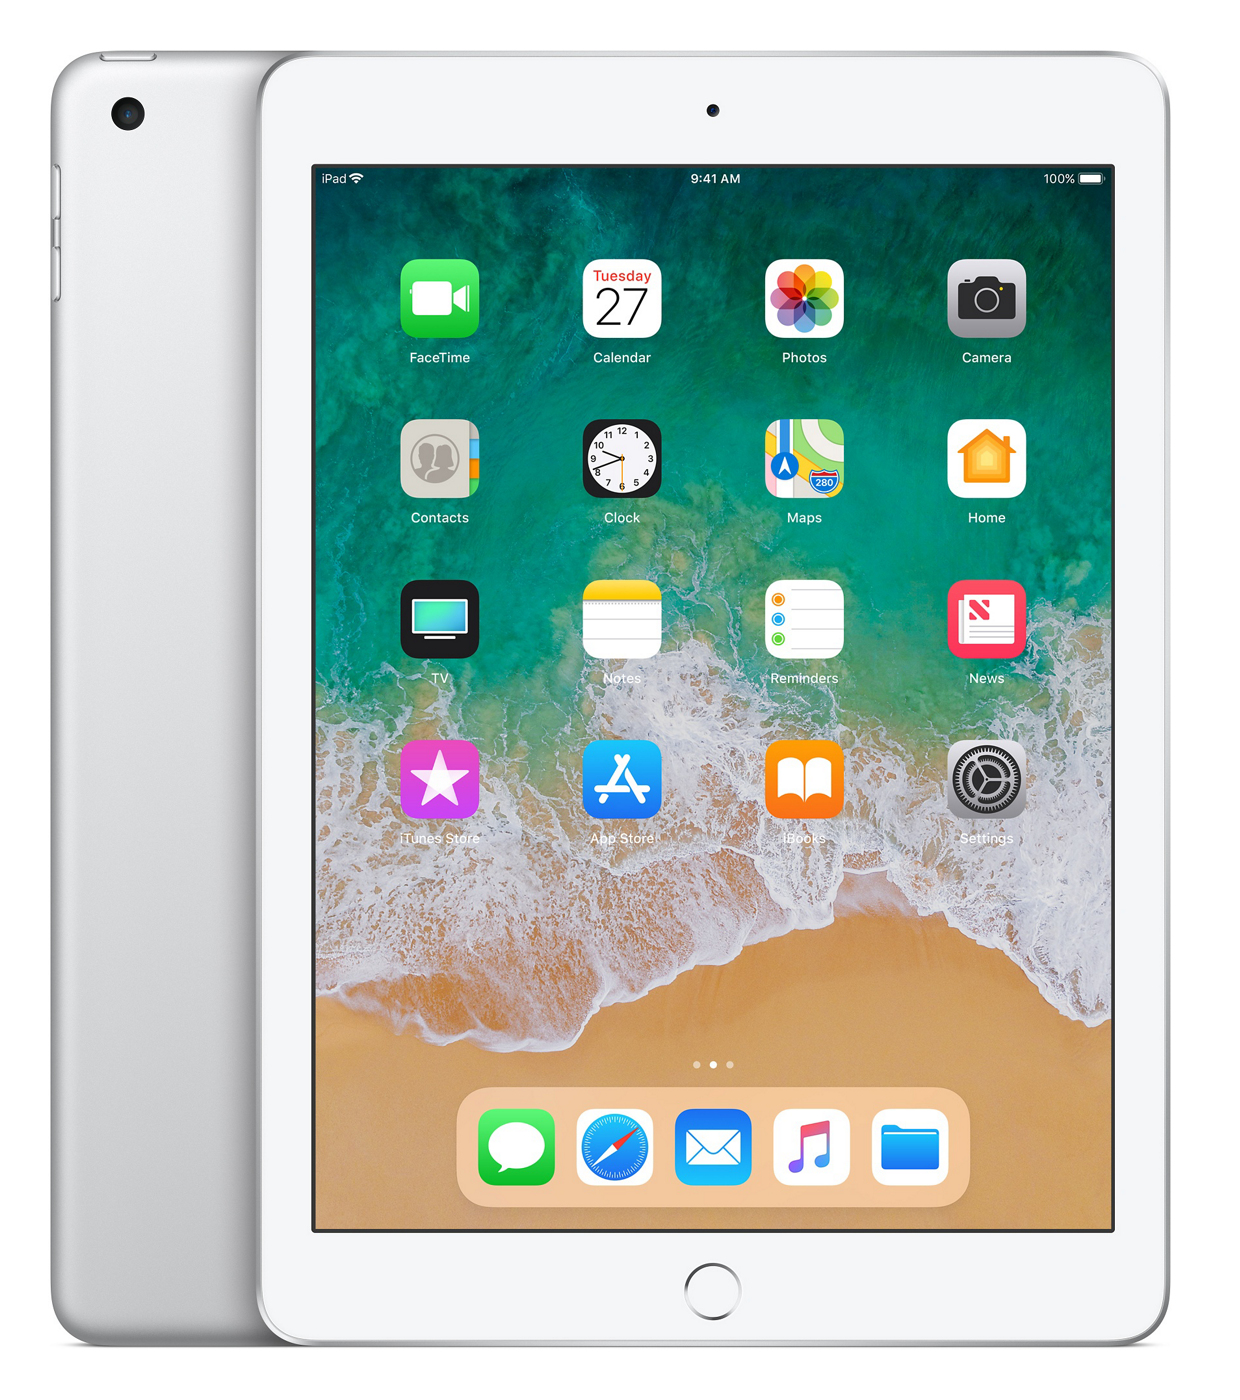 iPad 2018 - 9.7in - Wi-Fi - 128GB - Silver